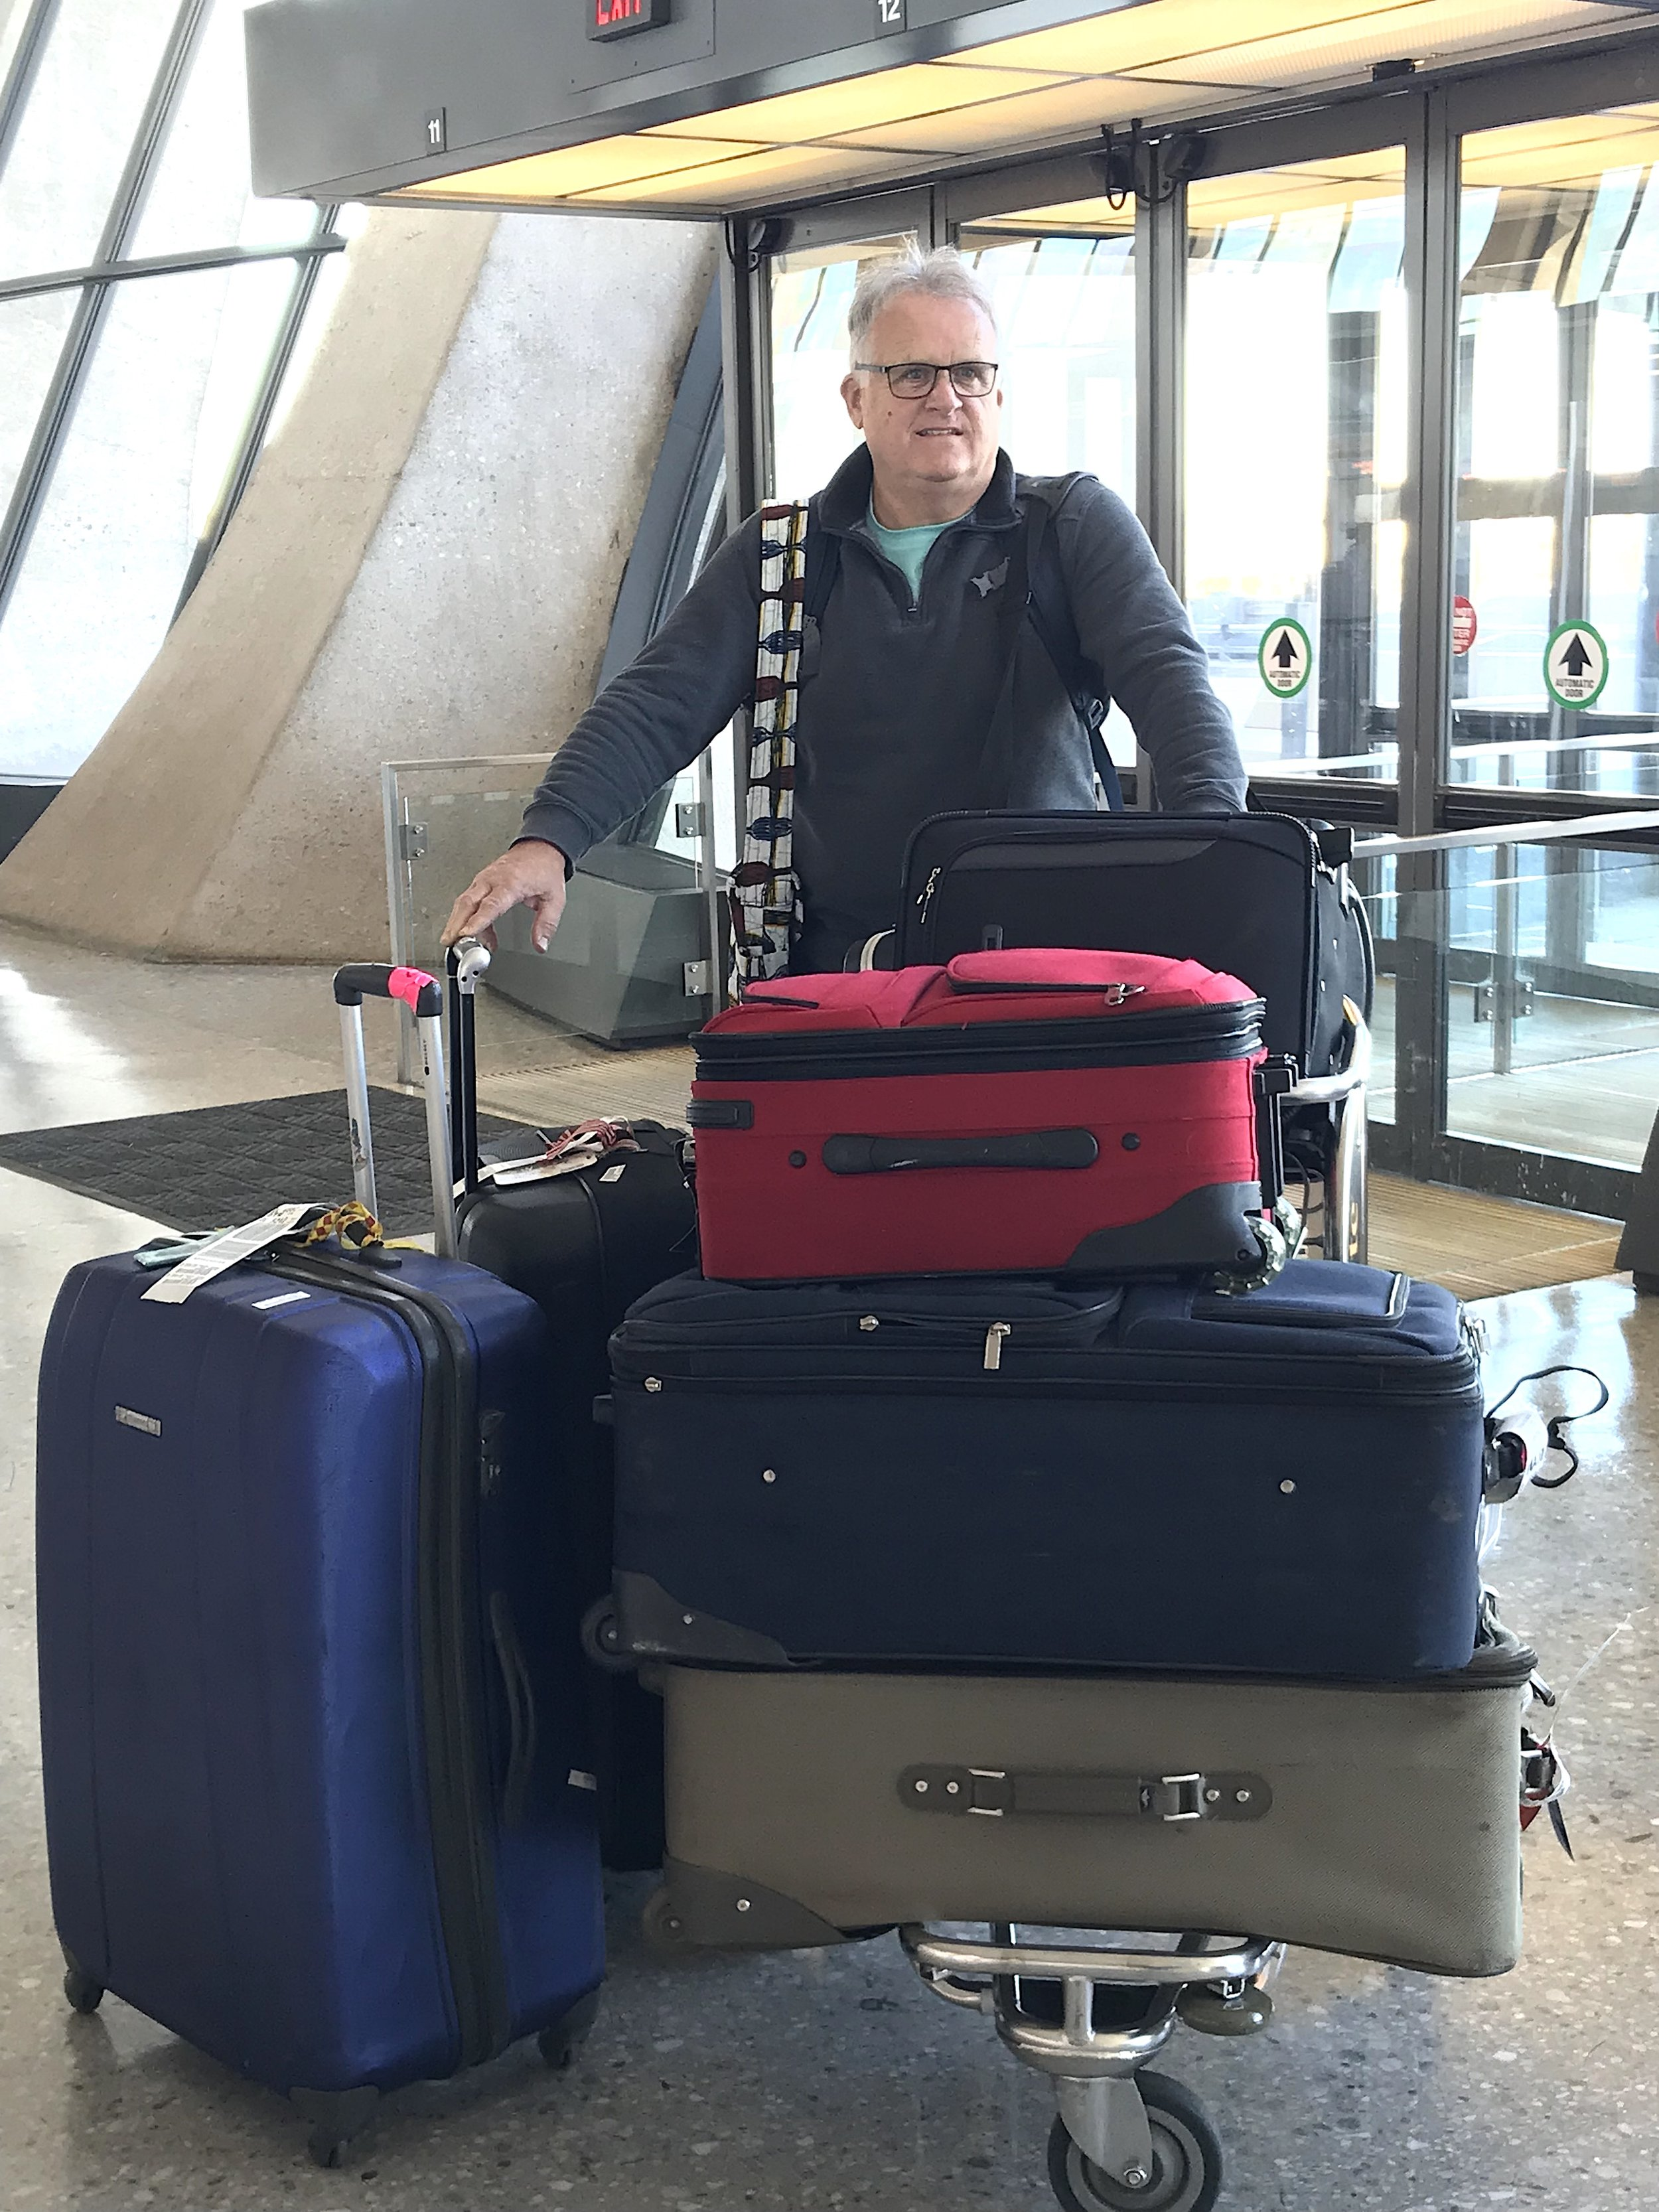 Dave and all the luggage!